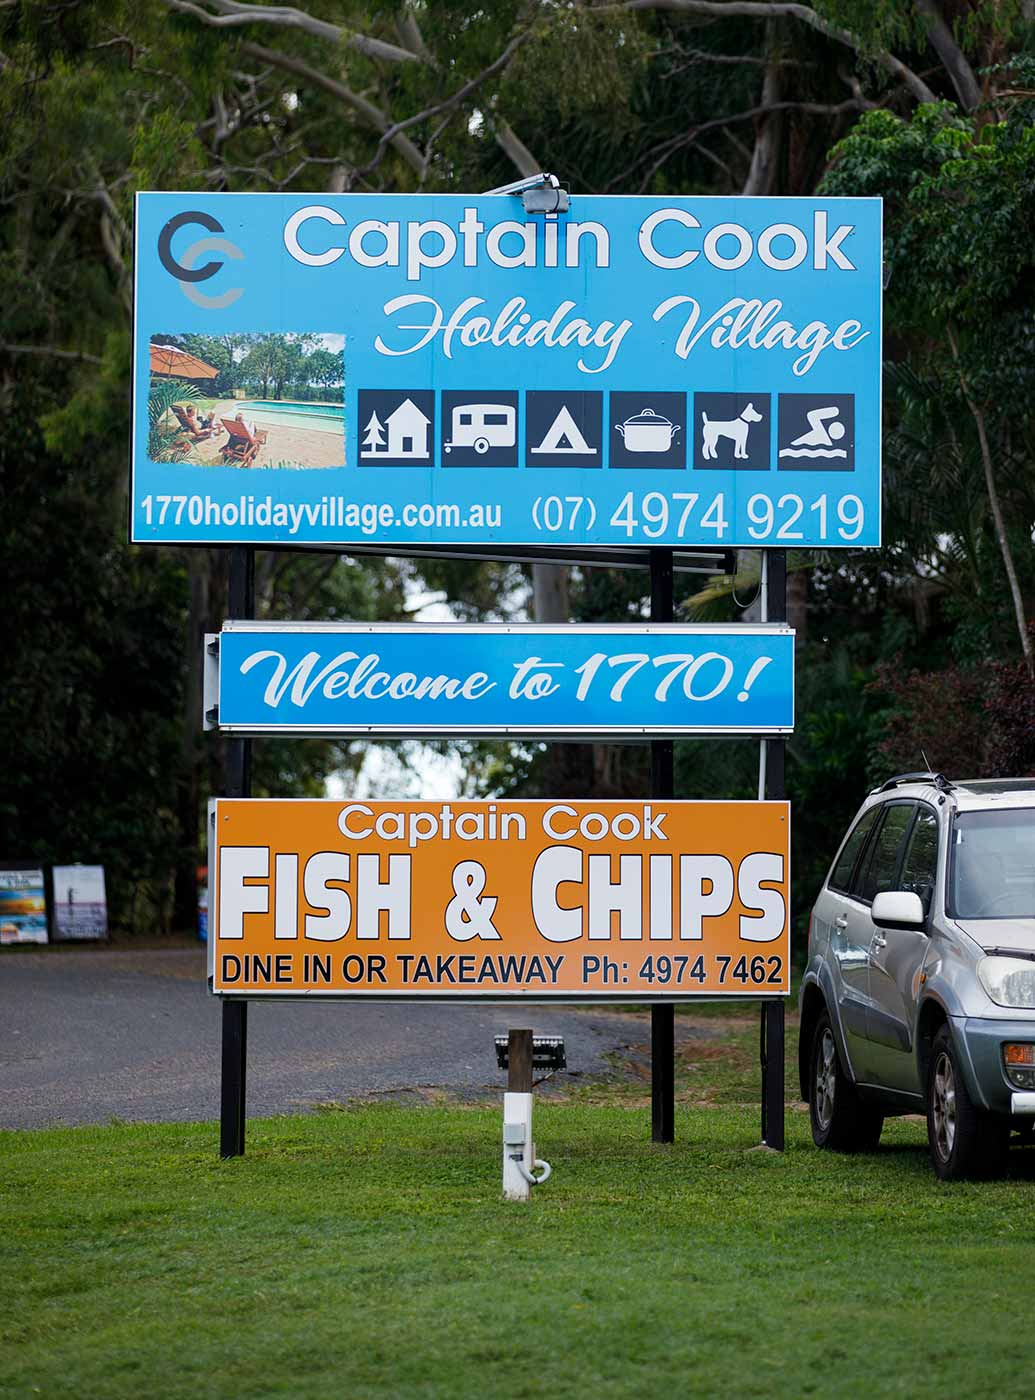 Colour photo of road signage including 'Captain Cook Holiday Village', 'Welcome to 1770!' and 'Captain Cook Fish & Chips'. - click to view larger image